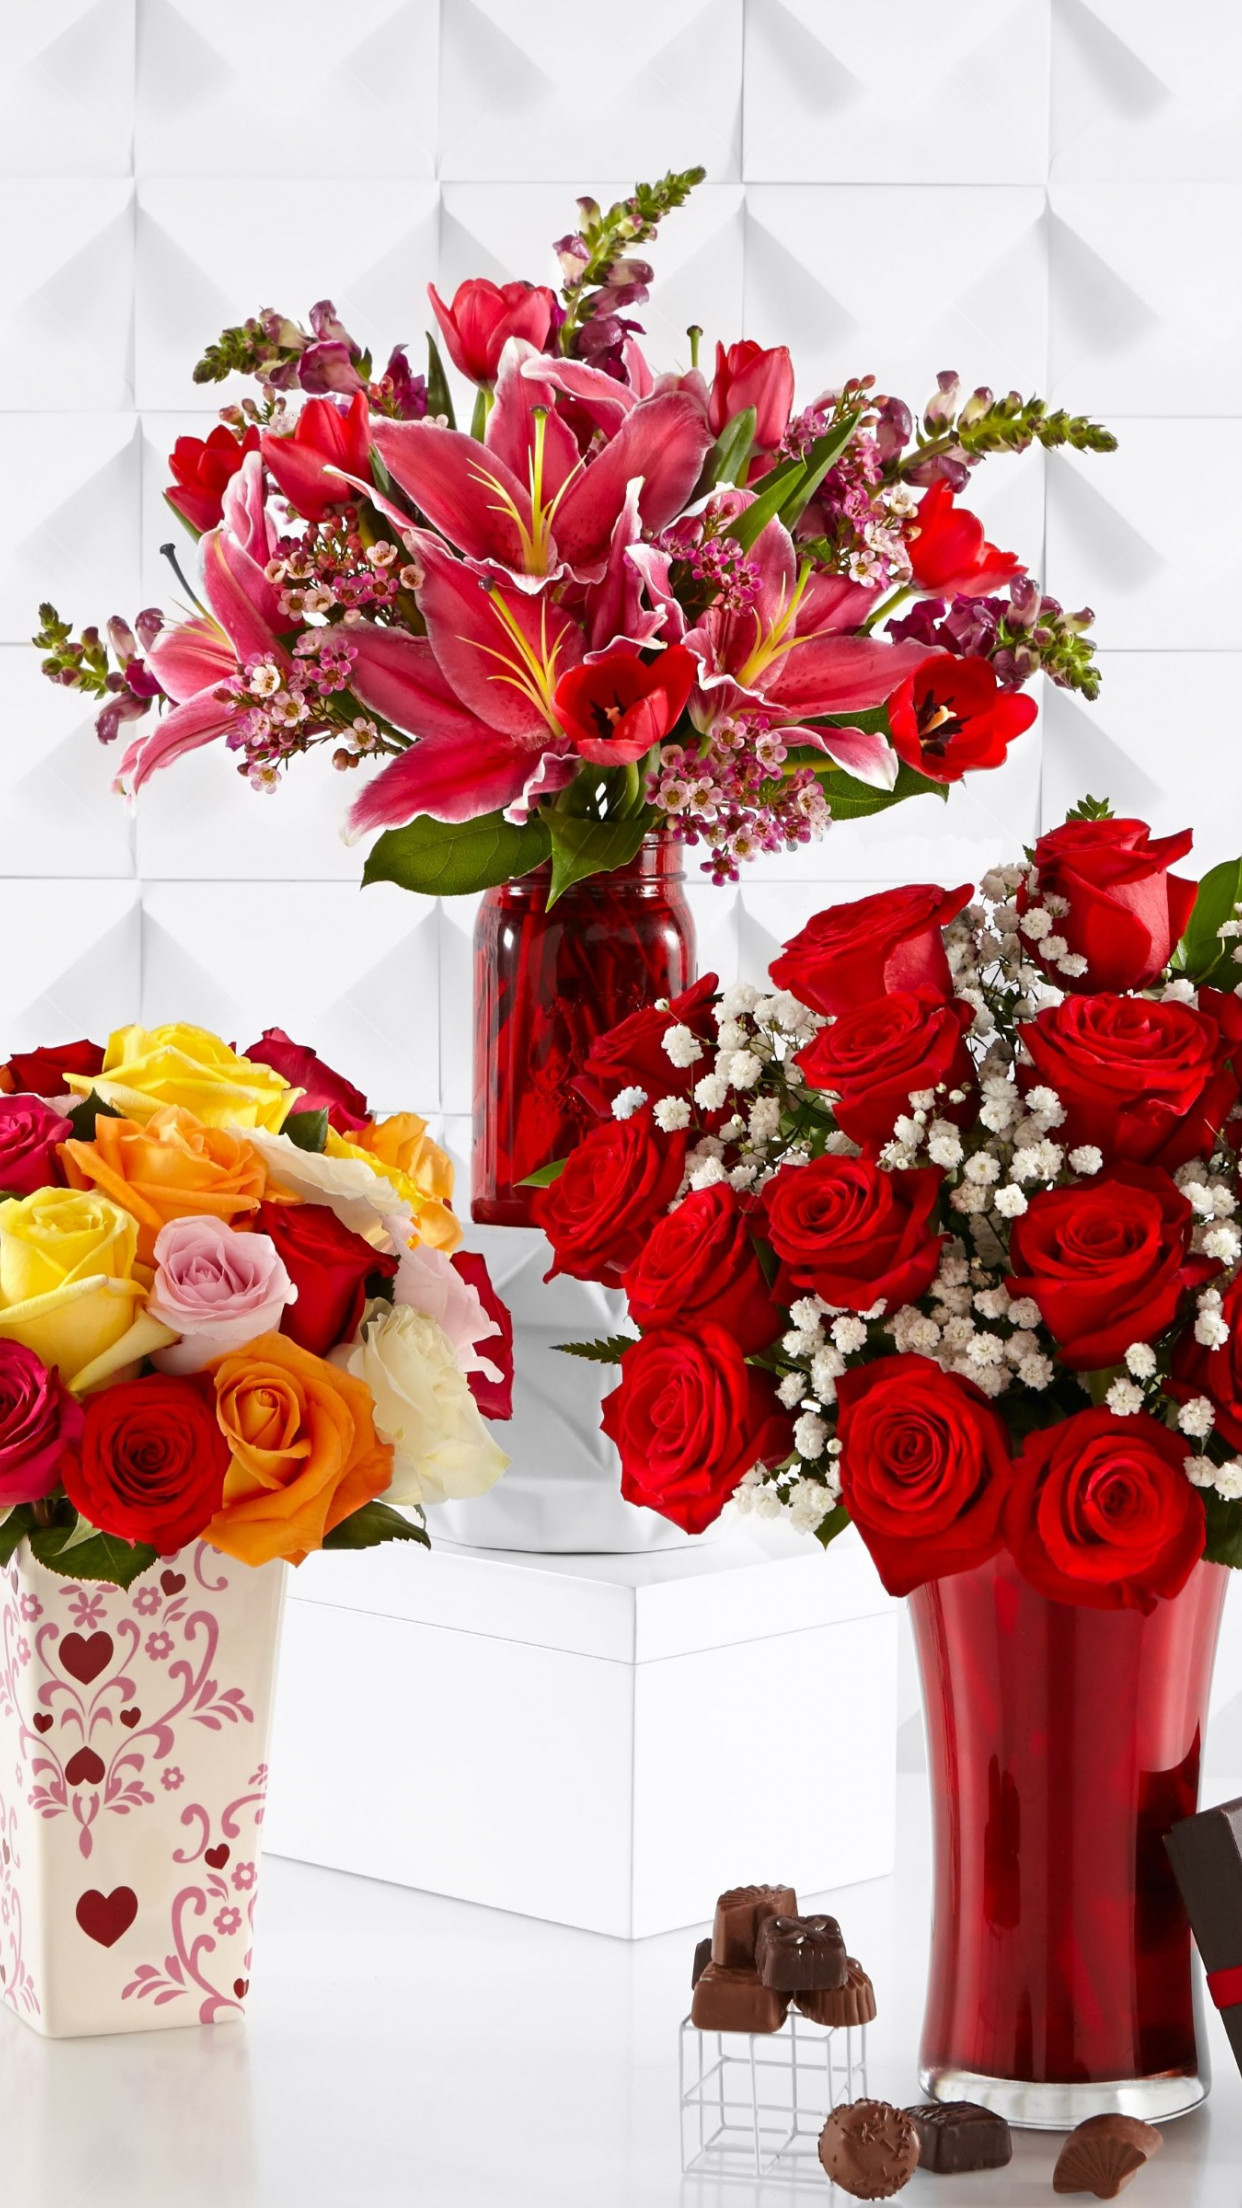 Bouquets of roses, lilies and tulips wallpaper 1242x2208